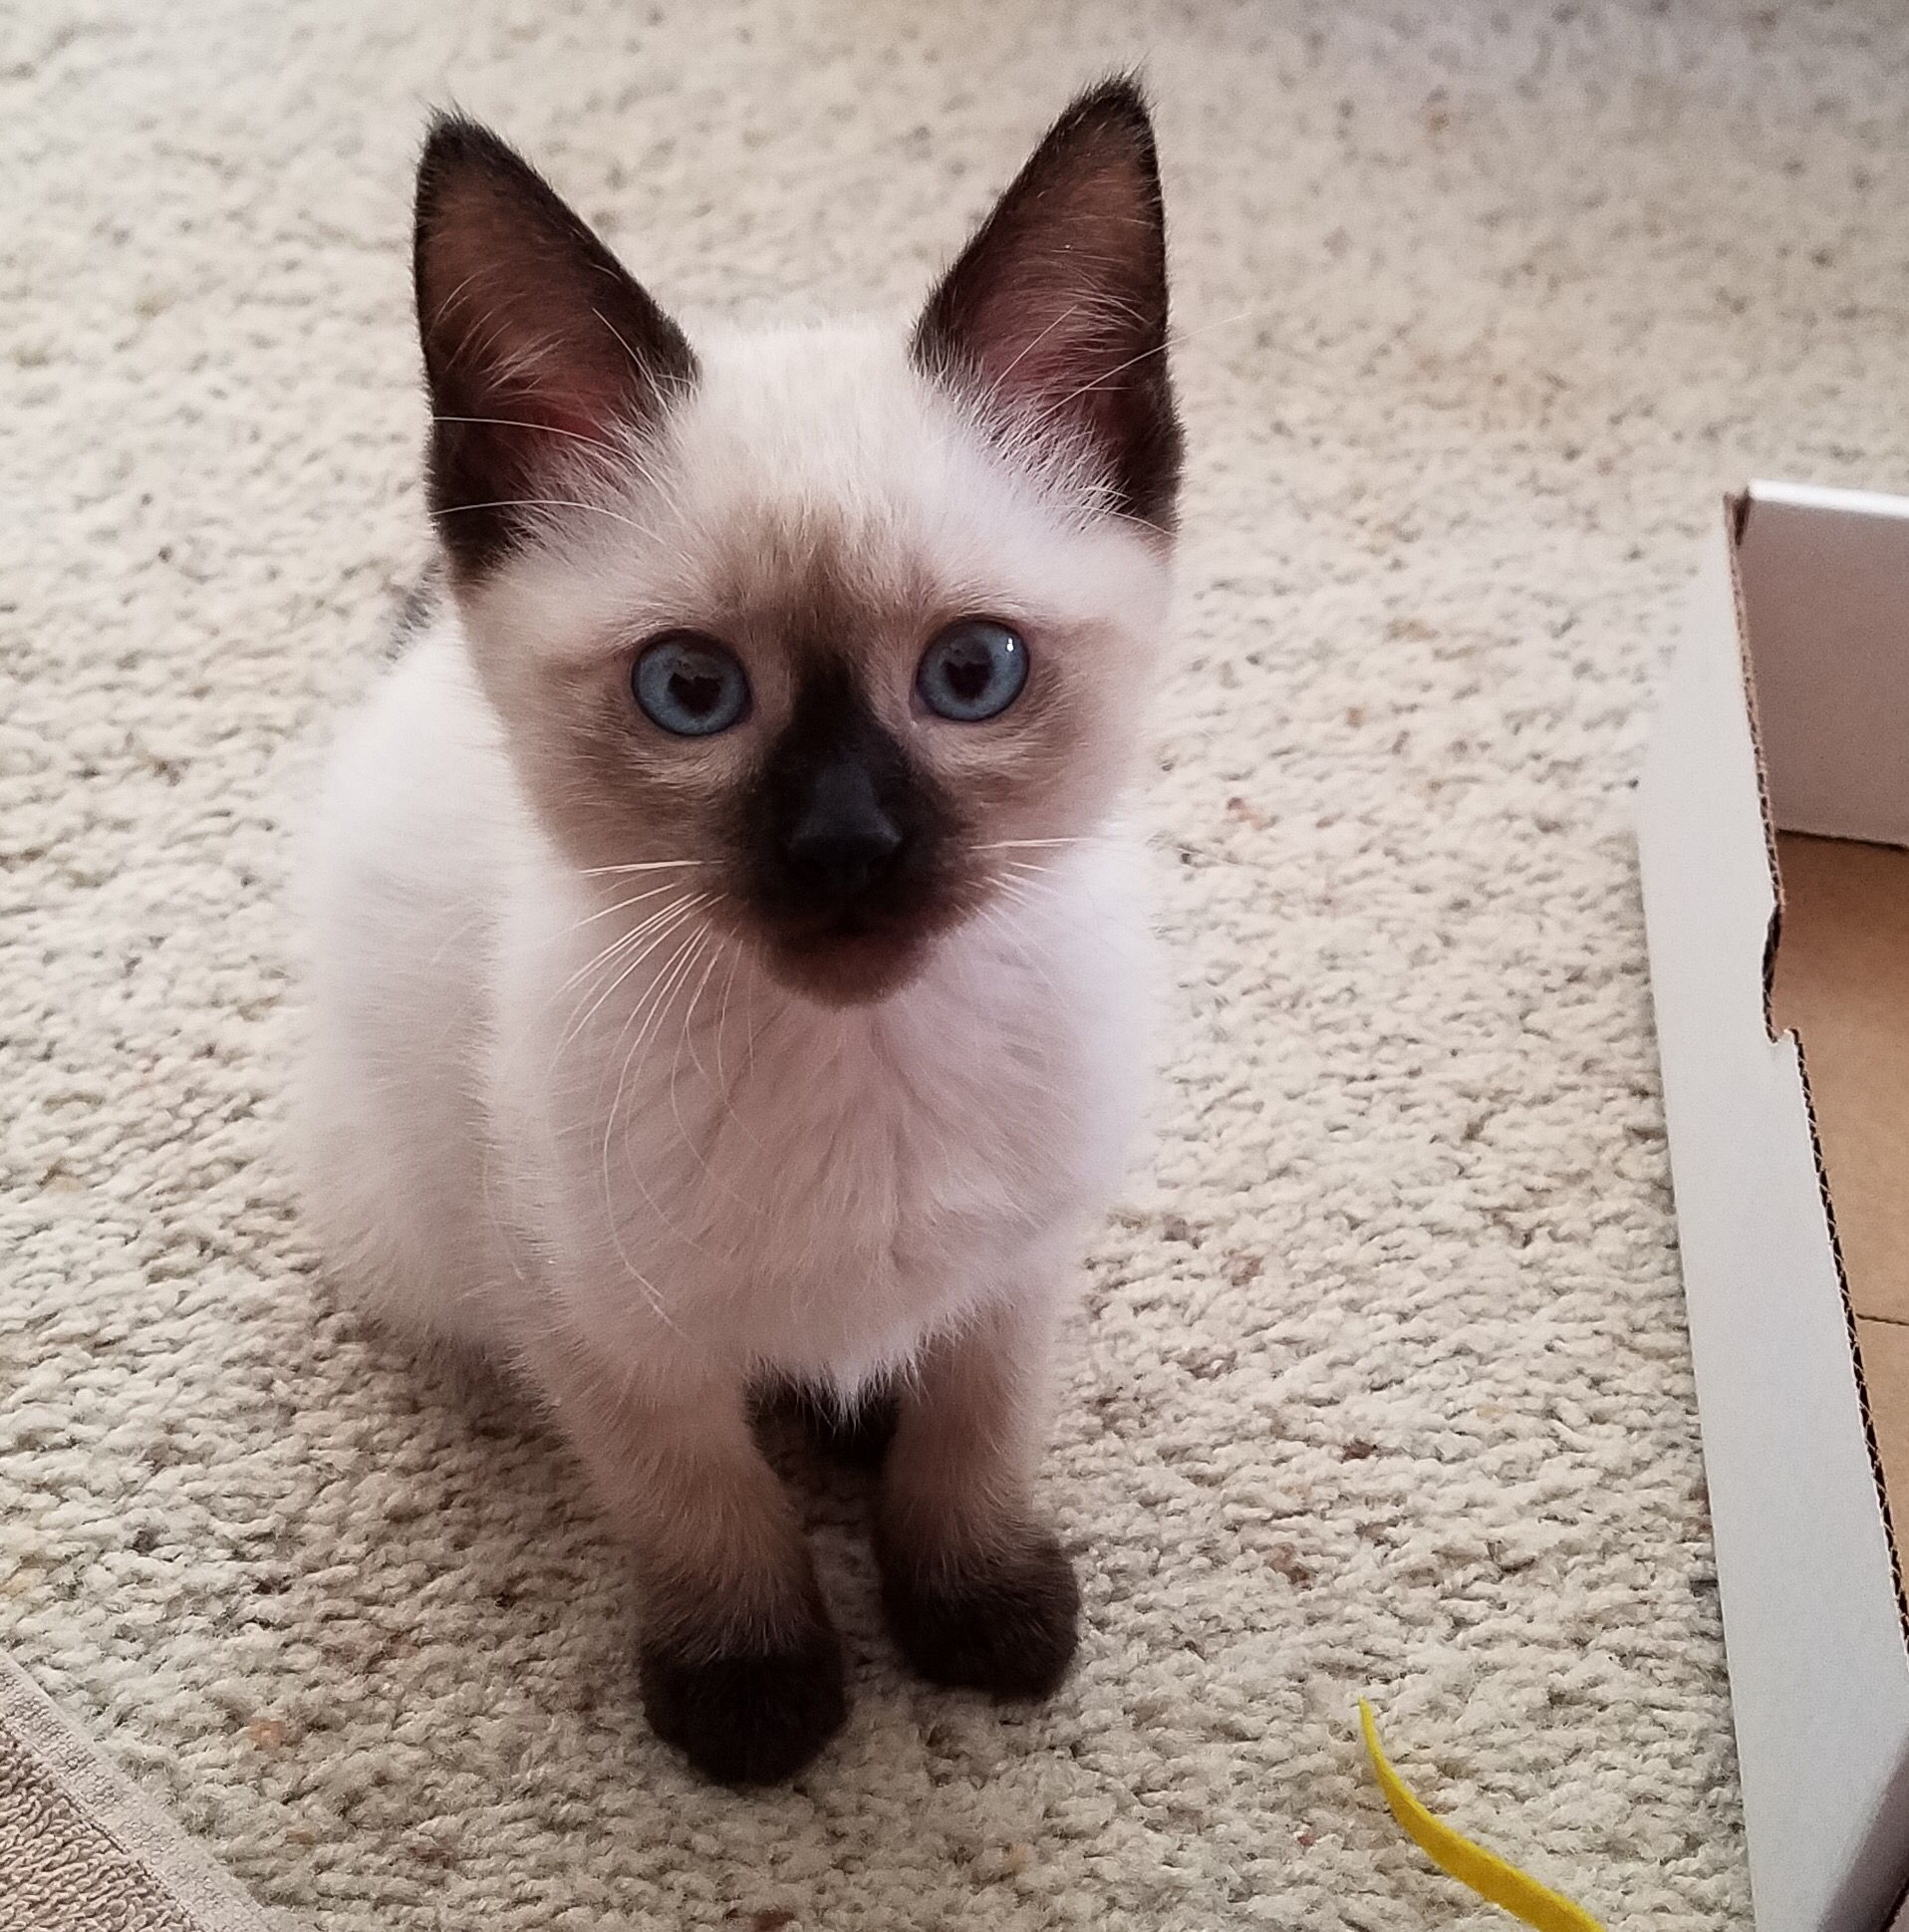 My New Siamese Kitty